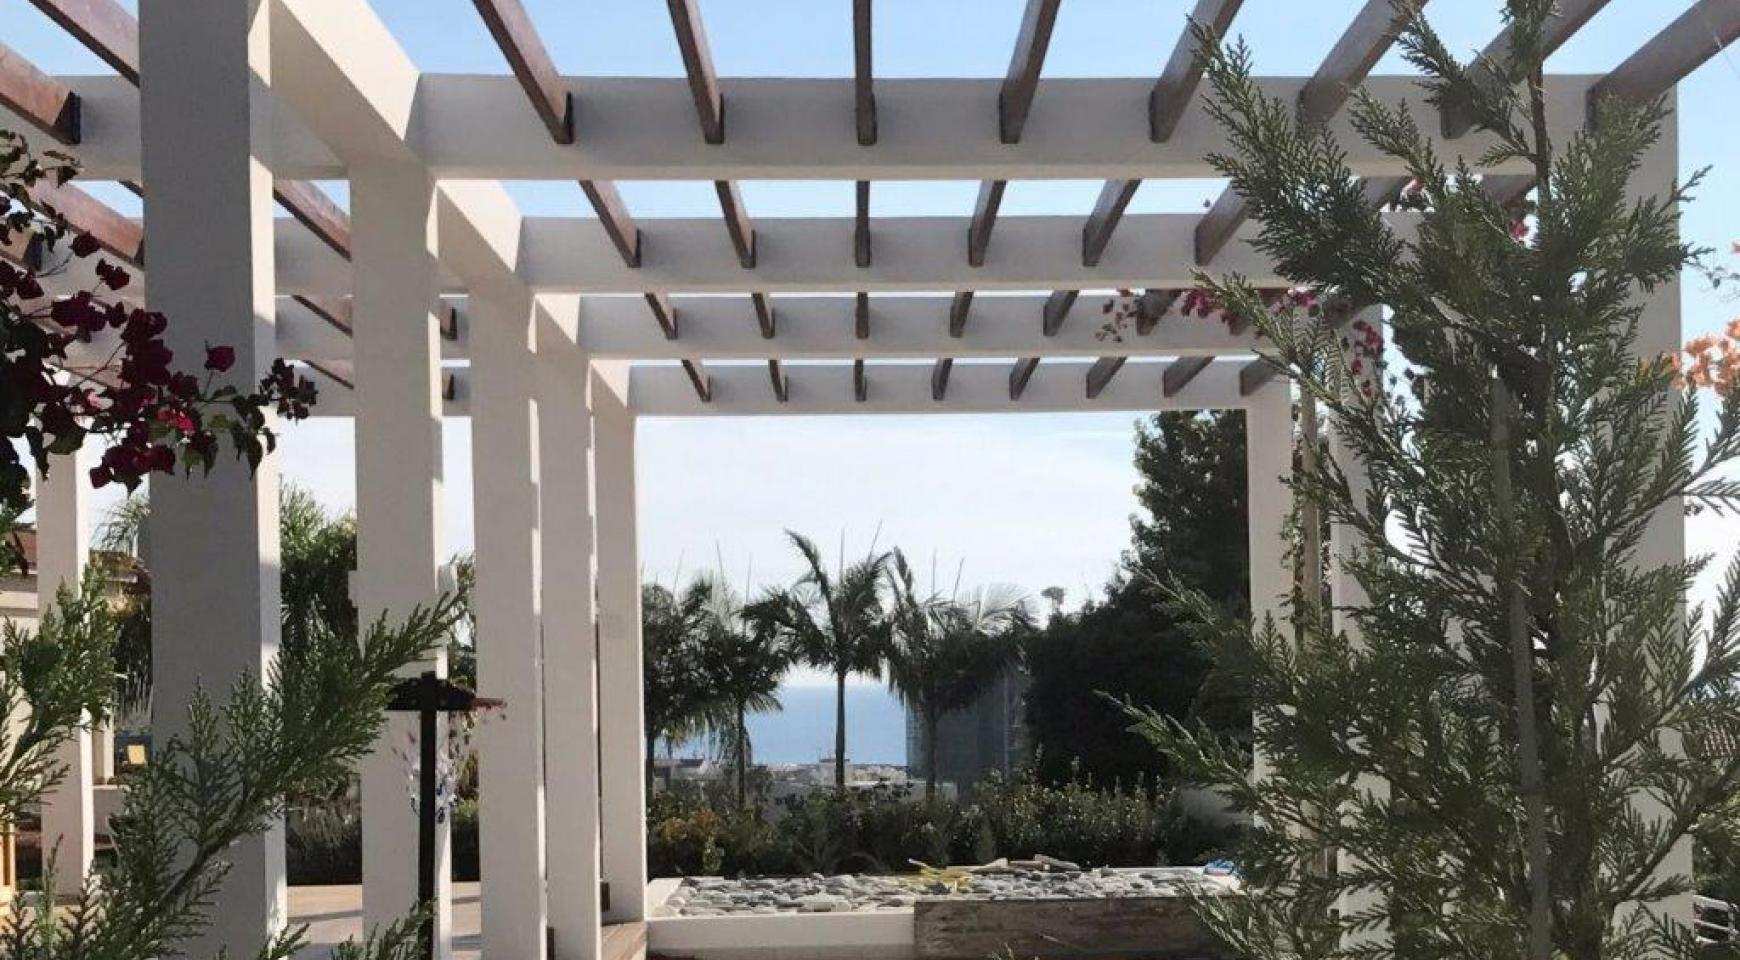 5 Bedroom Villa with Sea Views in Agios Tychonas Area - 3